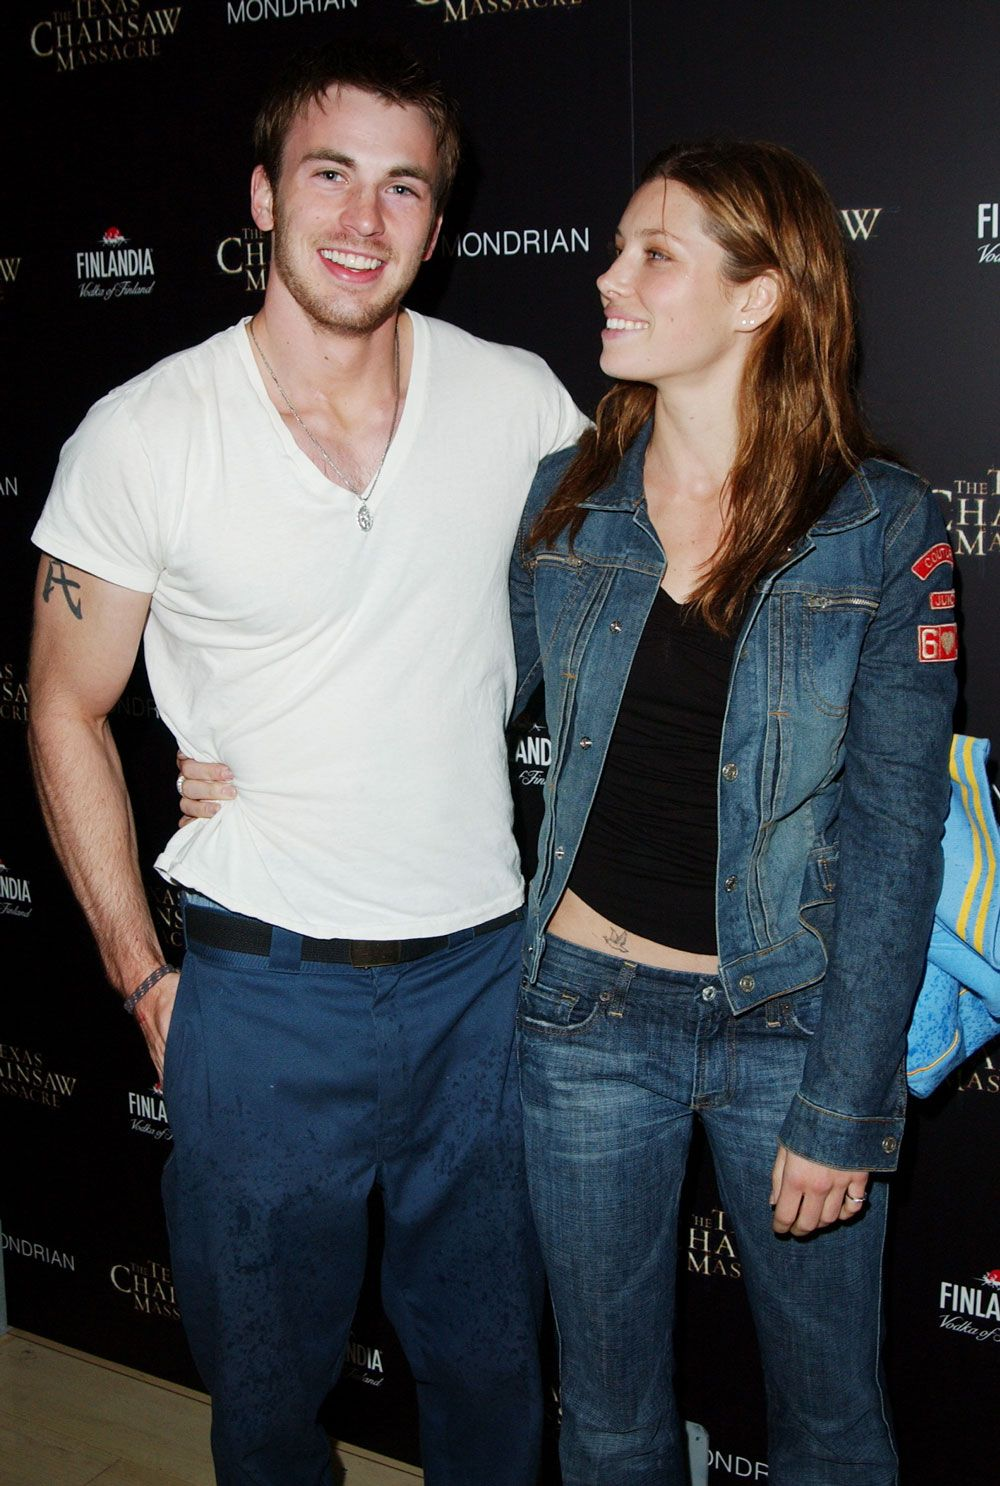 Is jessica biel and chris evans still dating